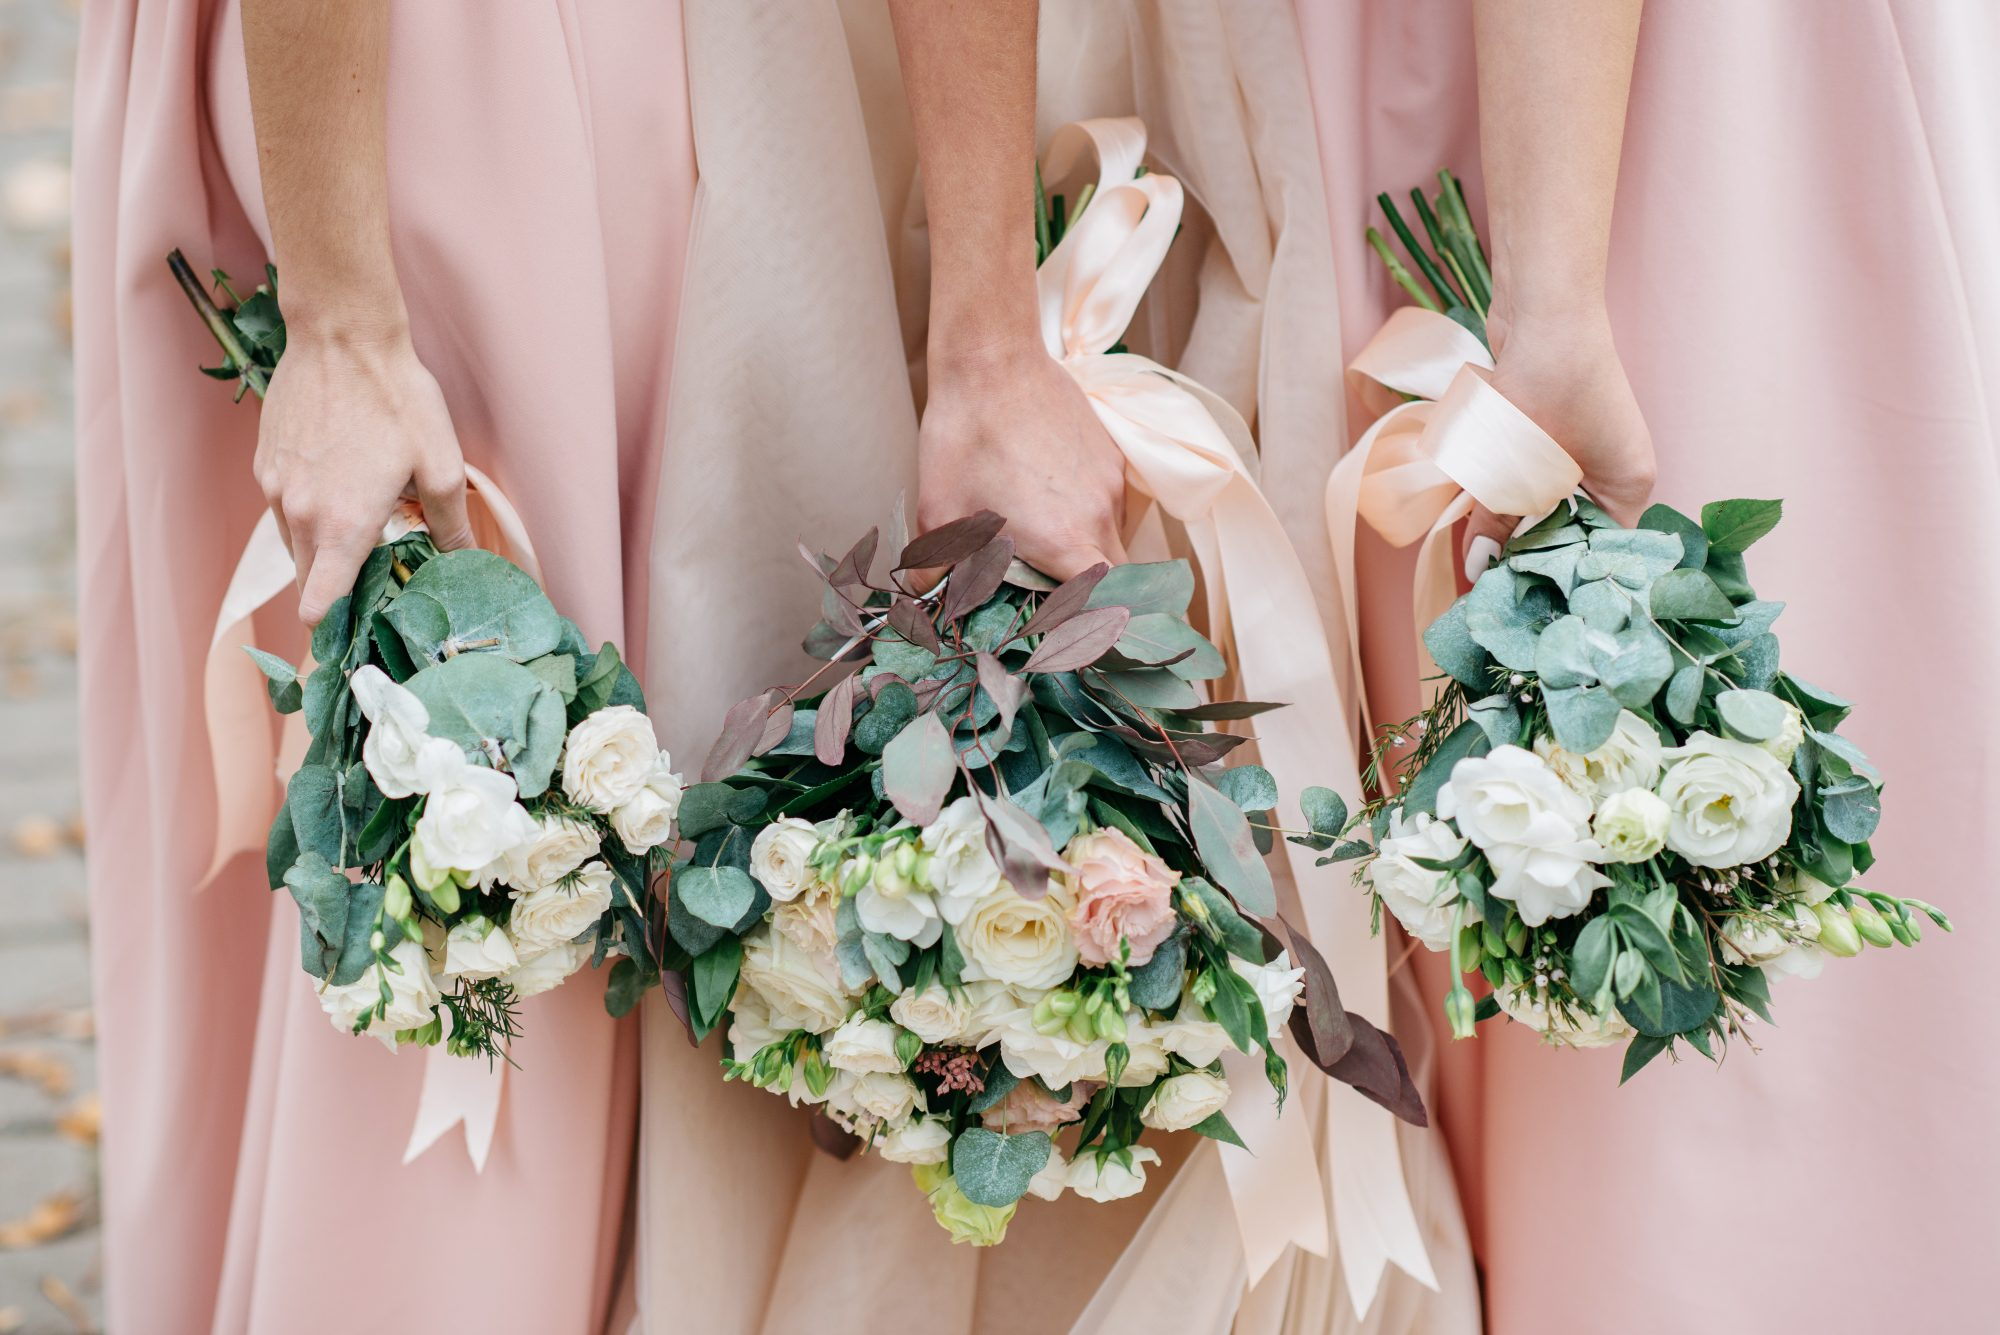 pay-for-wedding bridesmaid bouquet